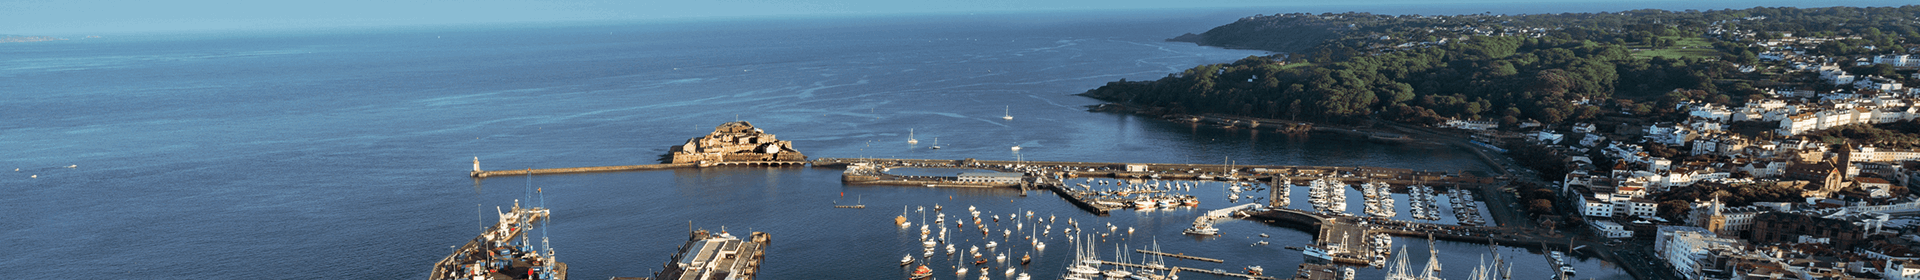 Condor Ferries | Port information